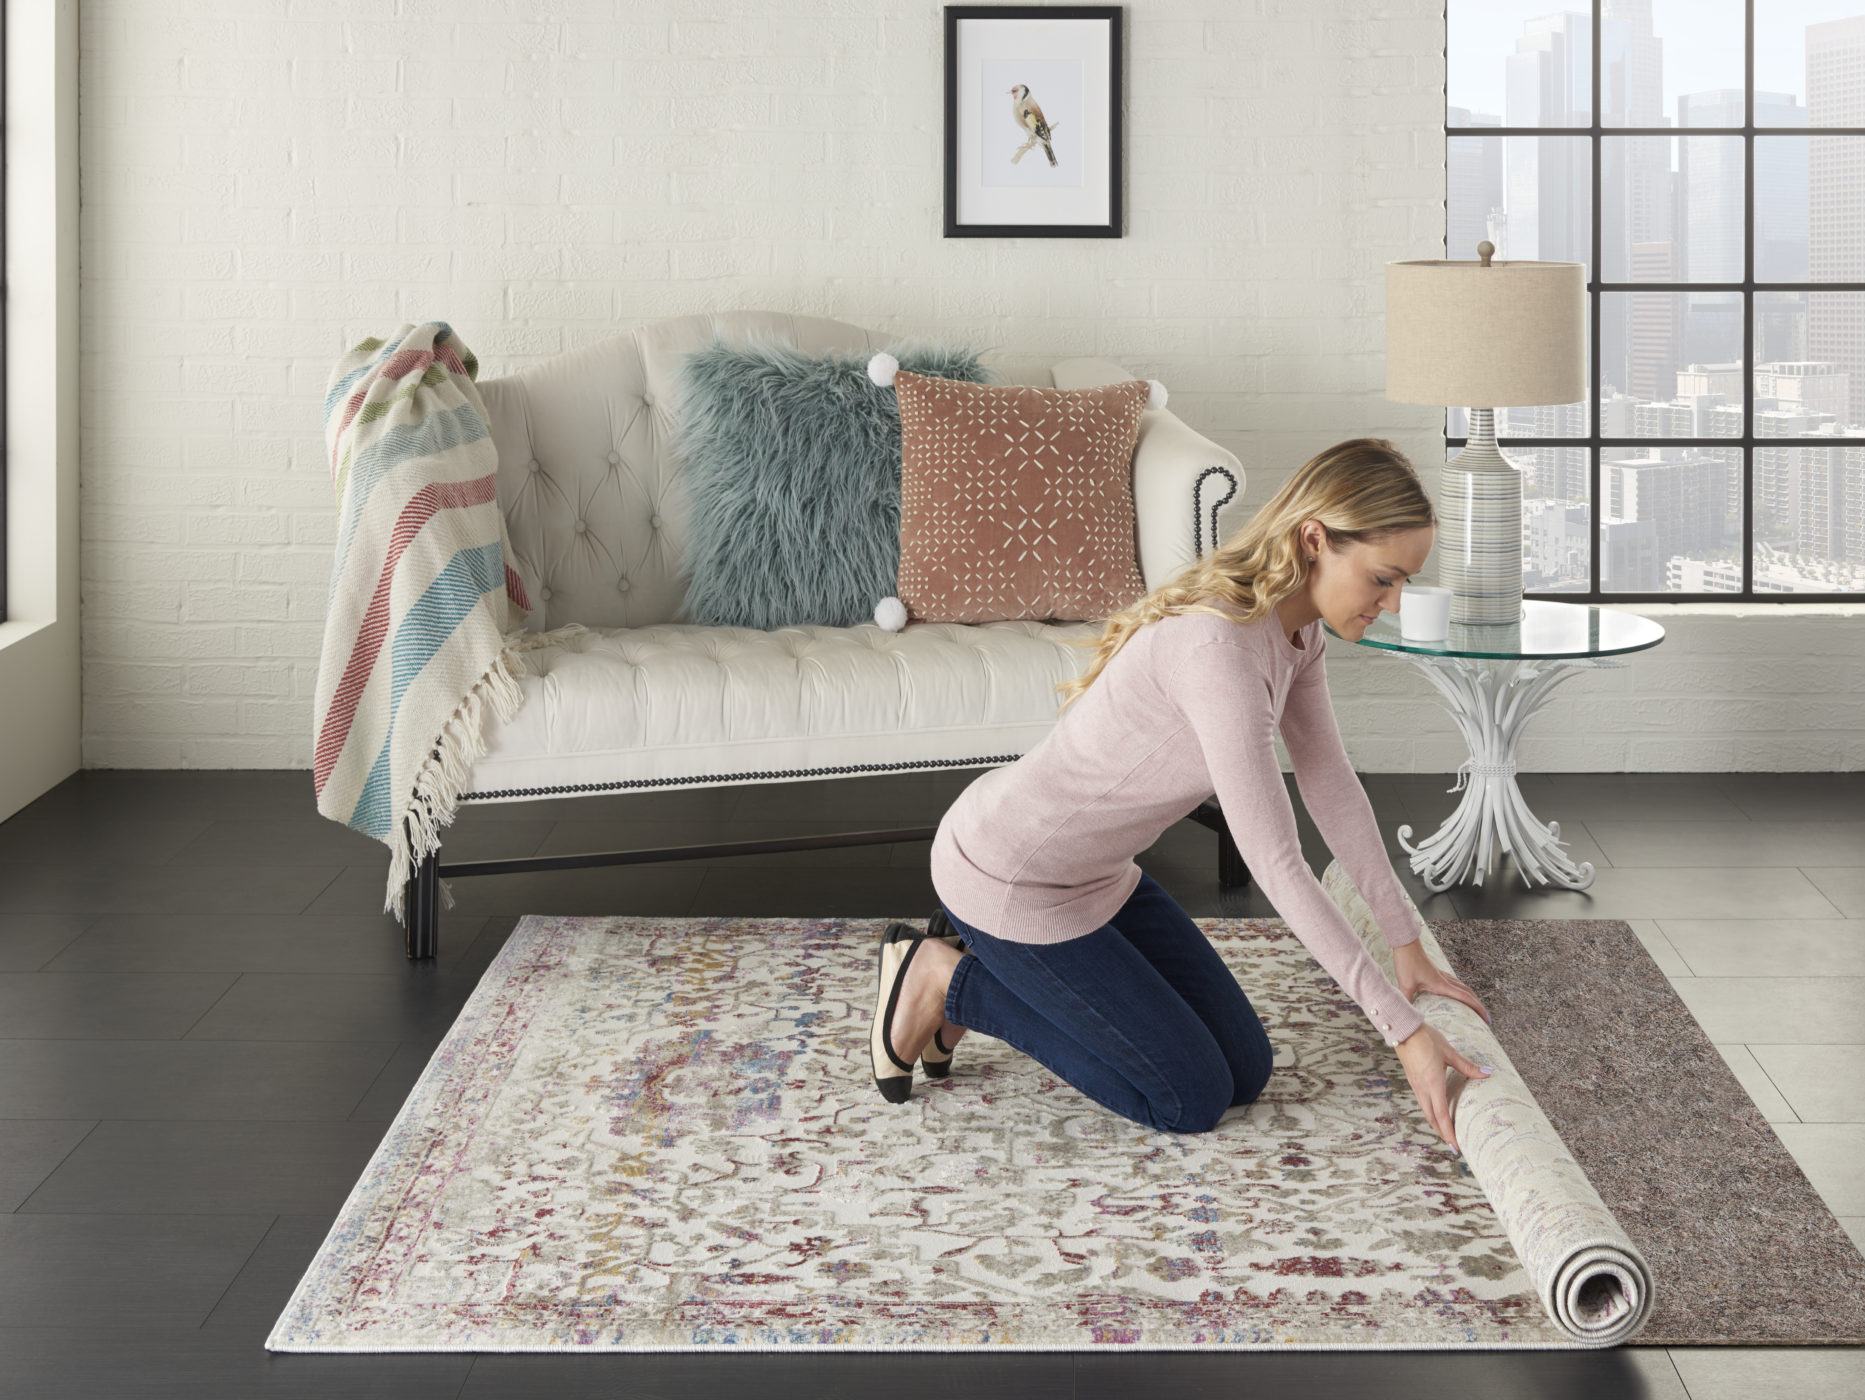 HOW TO LAY OUT YOUR NEW RUG – The Rug Edit